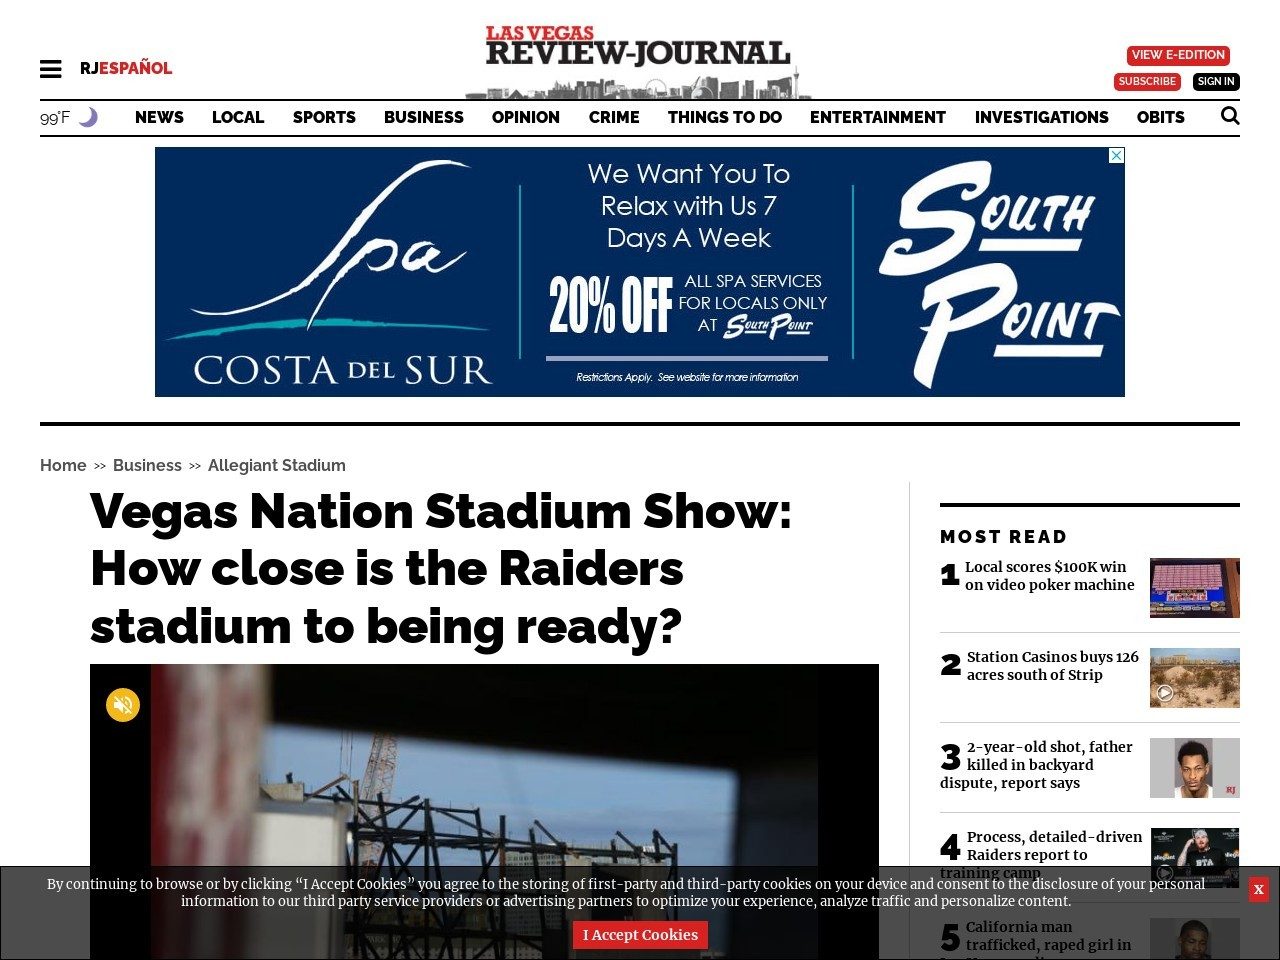 Vegas Nation Stadium Show: How close is the Raiders stadium to being ready?